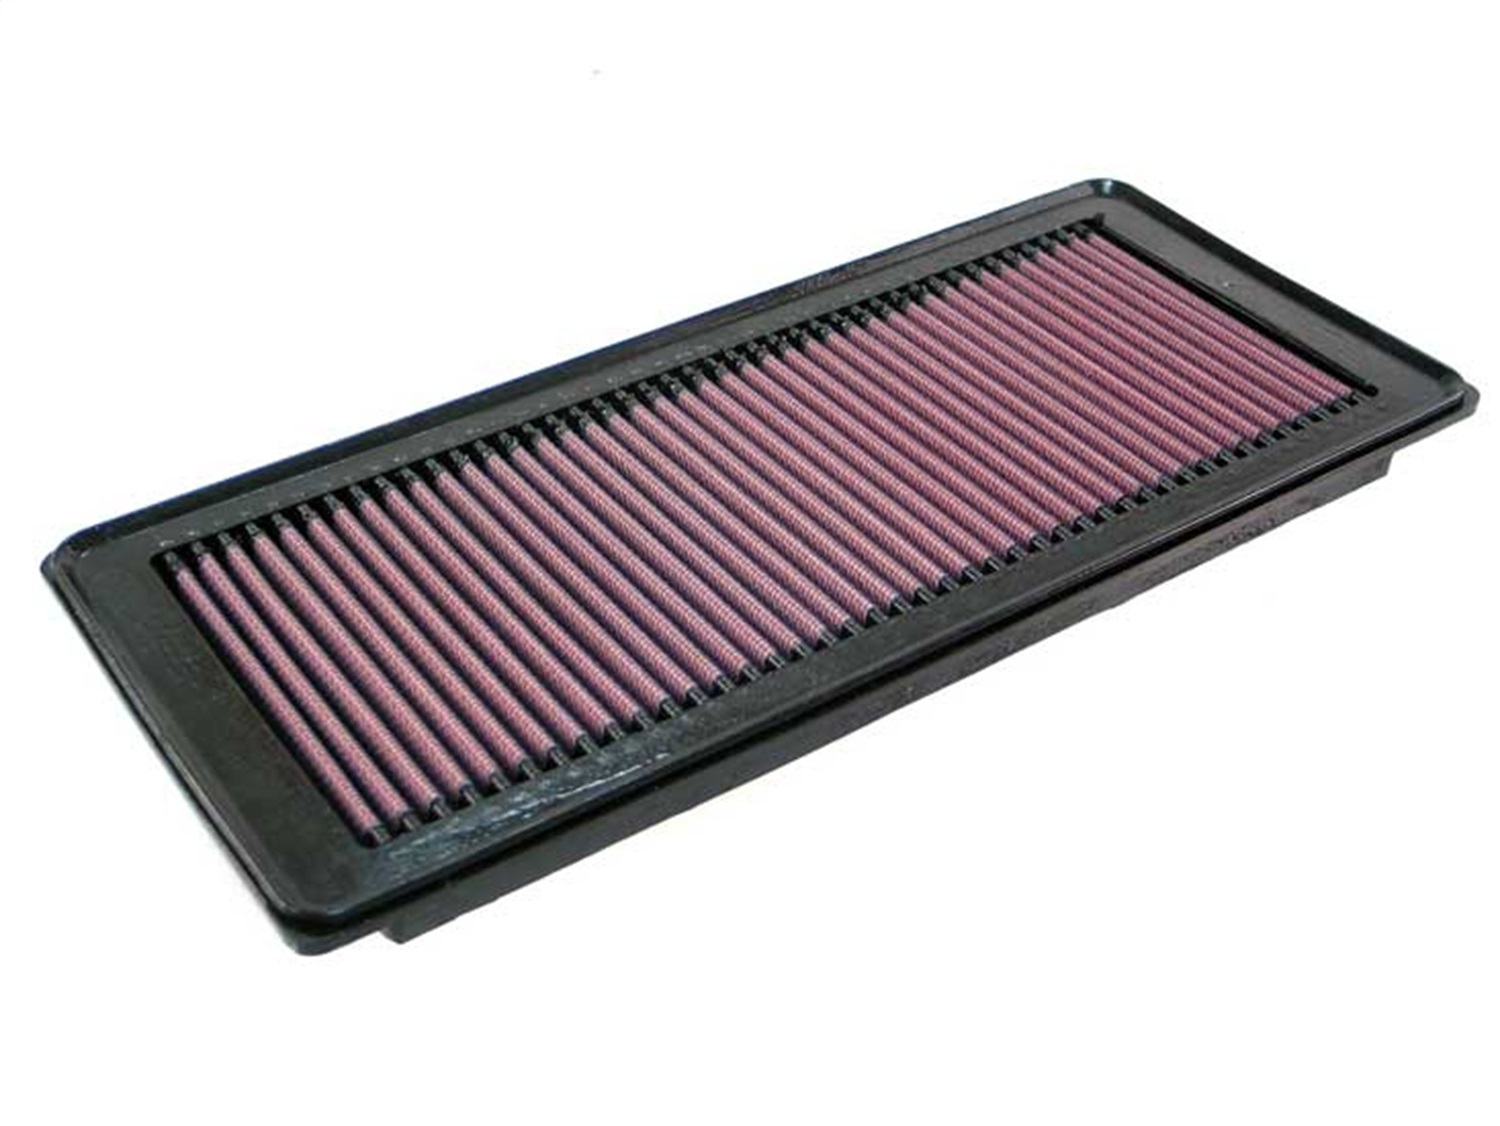 K&N Filters 33-2347 Air Filter Fits 05-12 Escape Mariner Tribute 33-2347